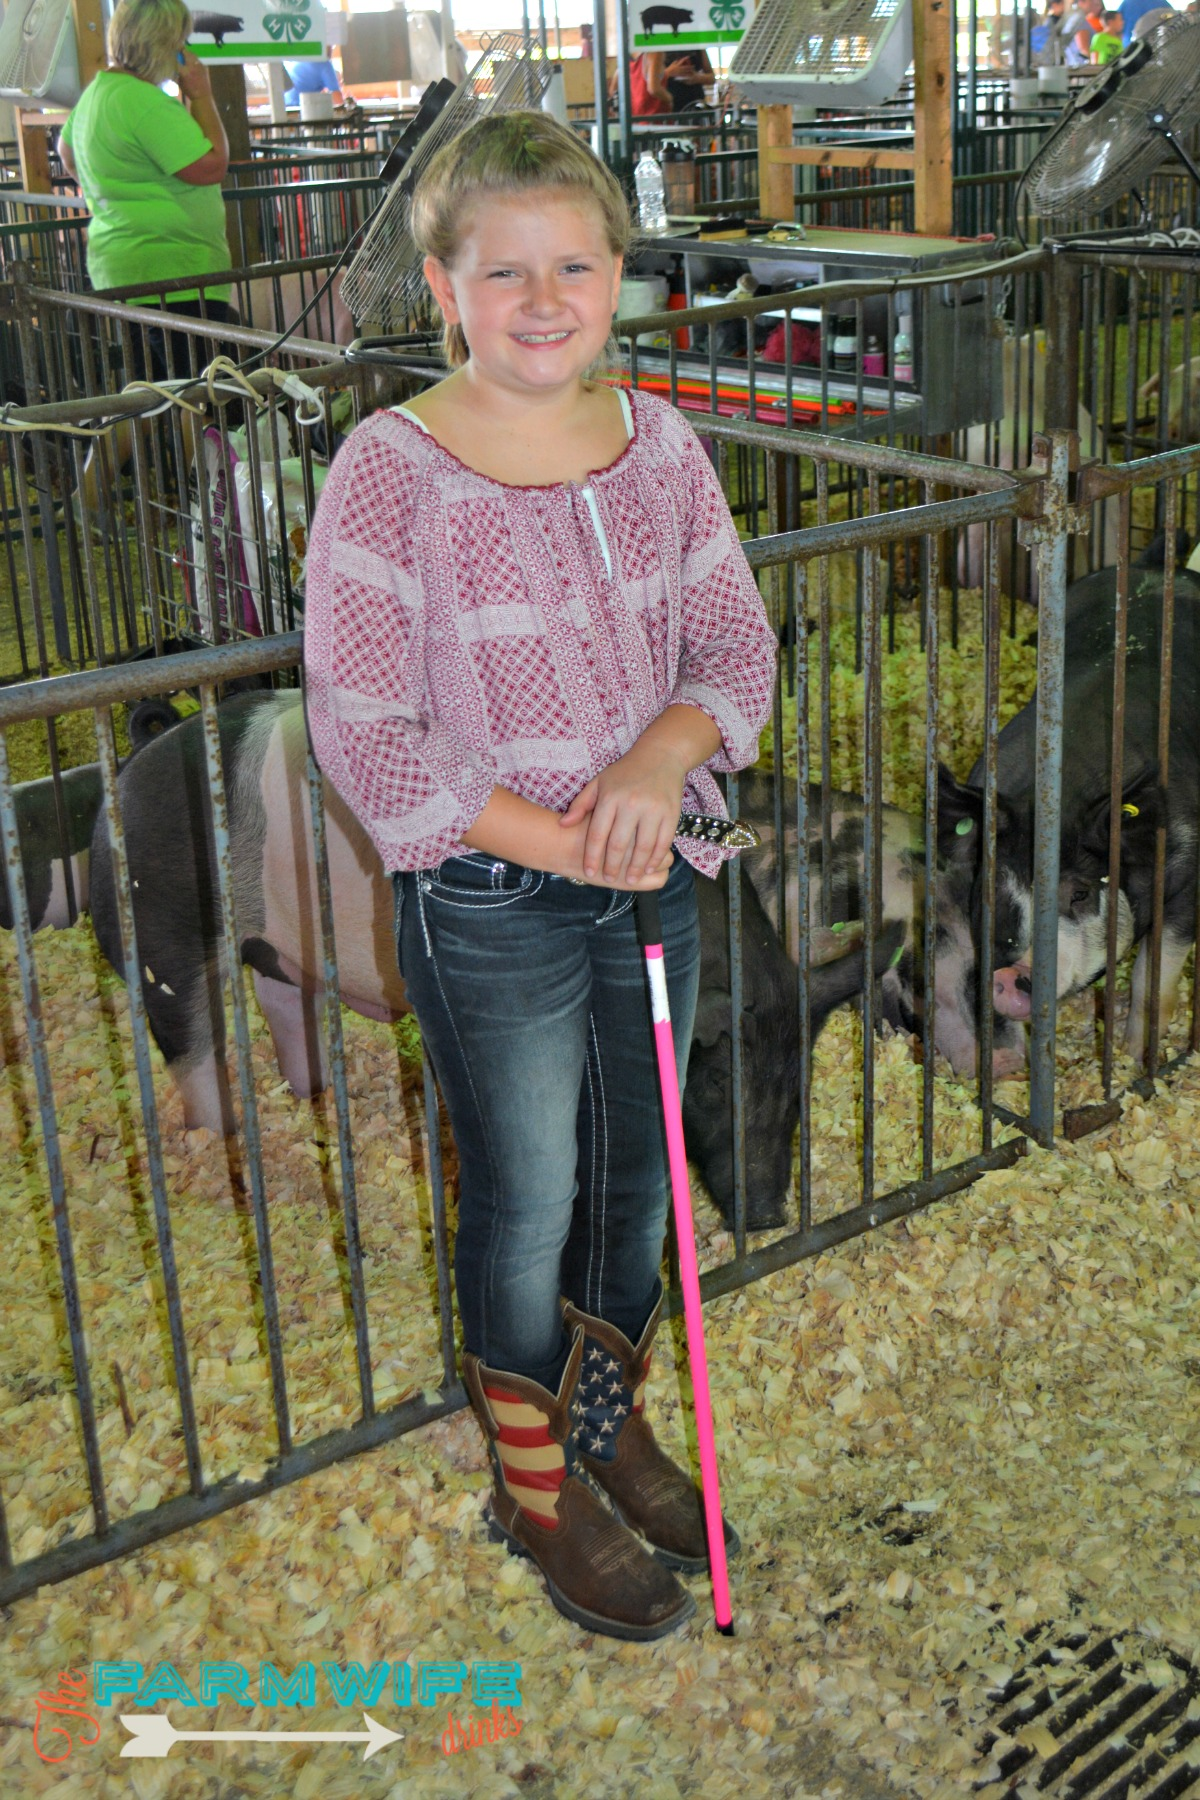 4-Her with her pig